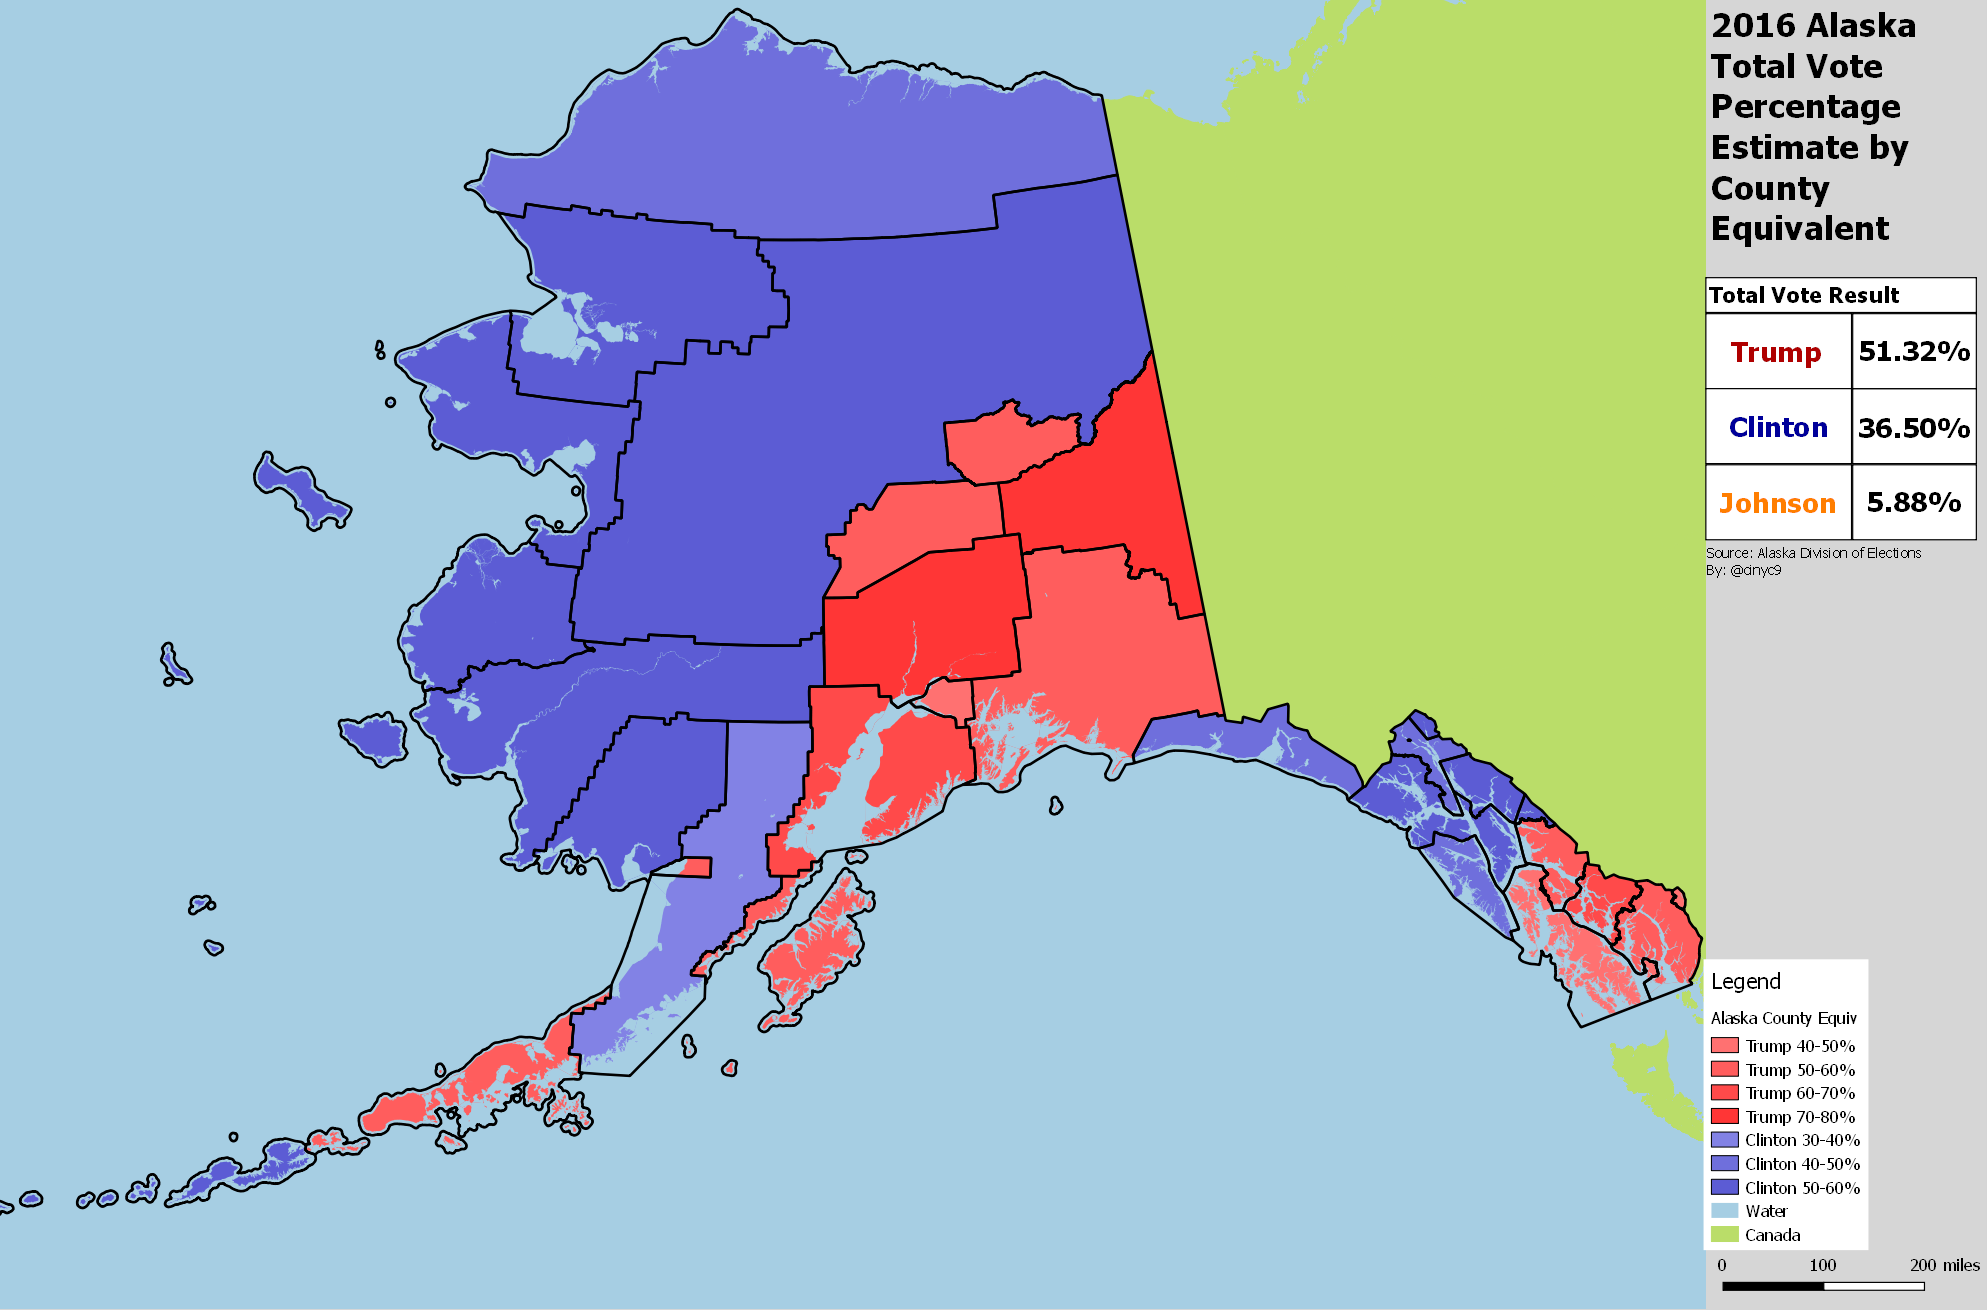 Alaska 2016 Presidential Result by County Map